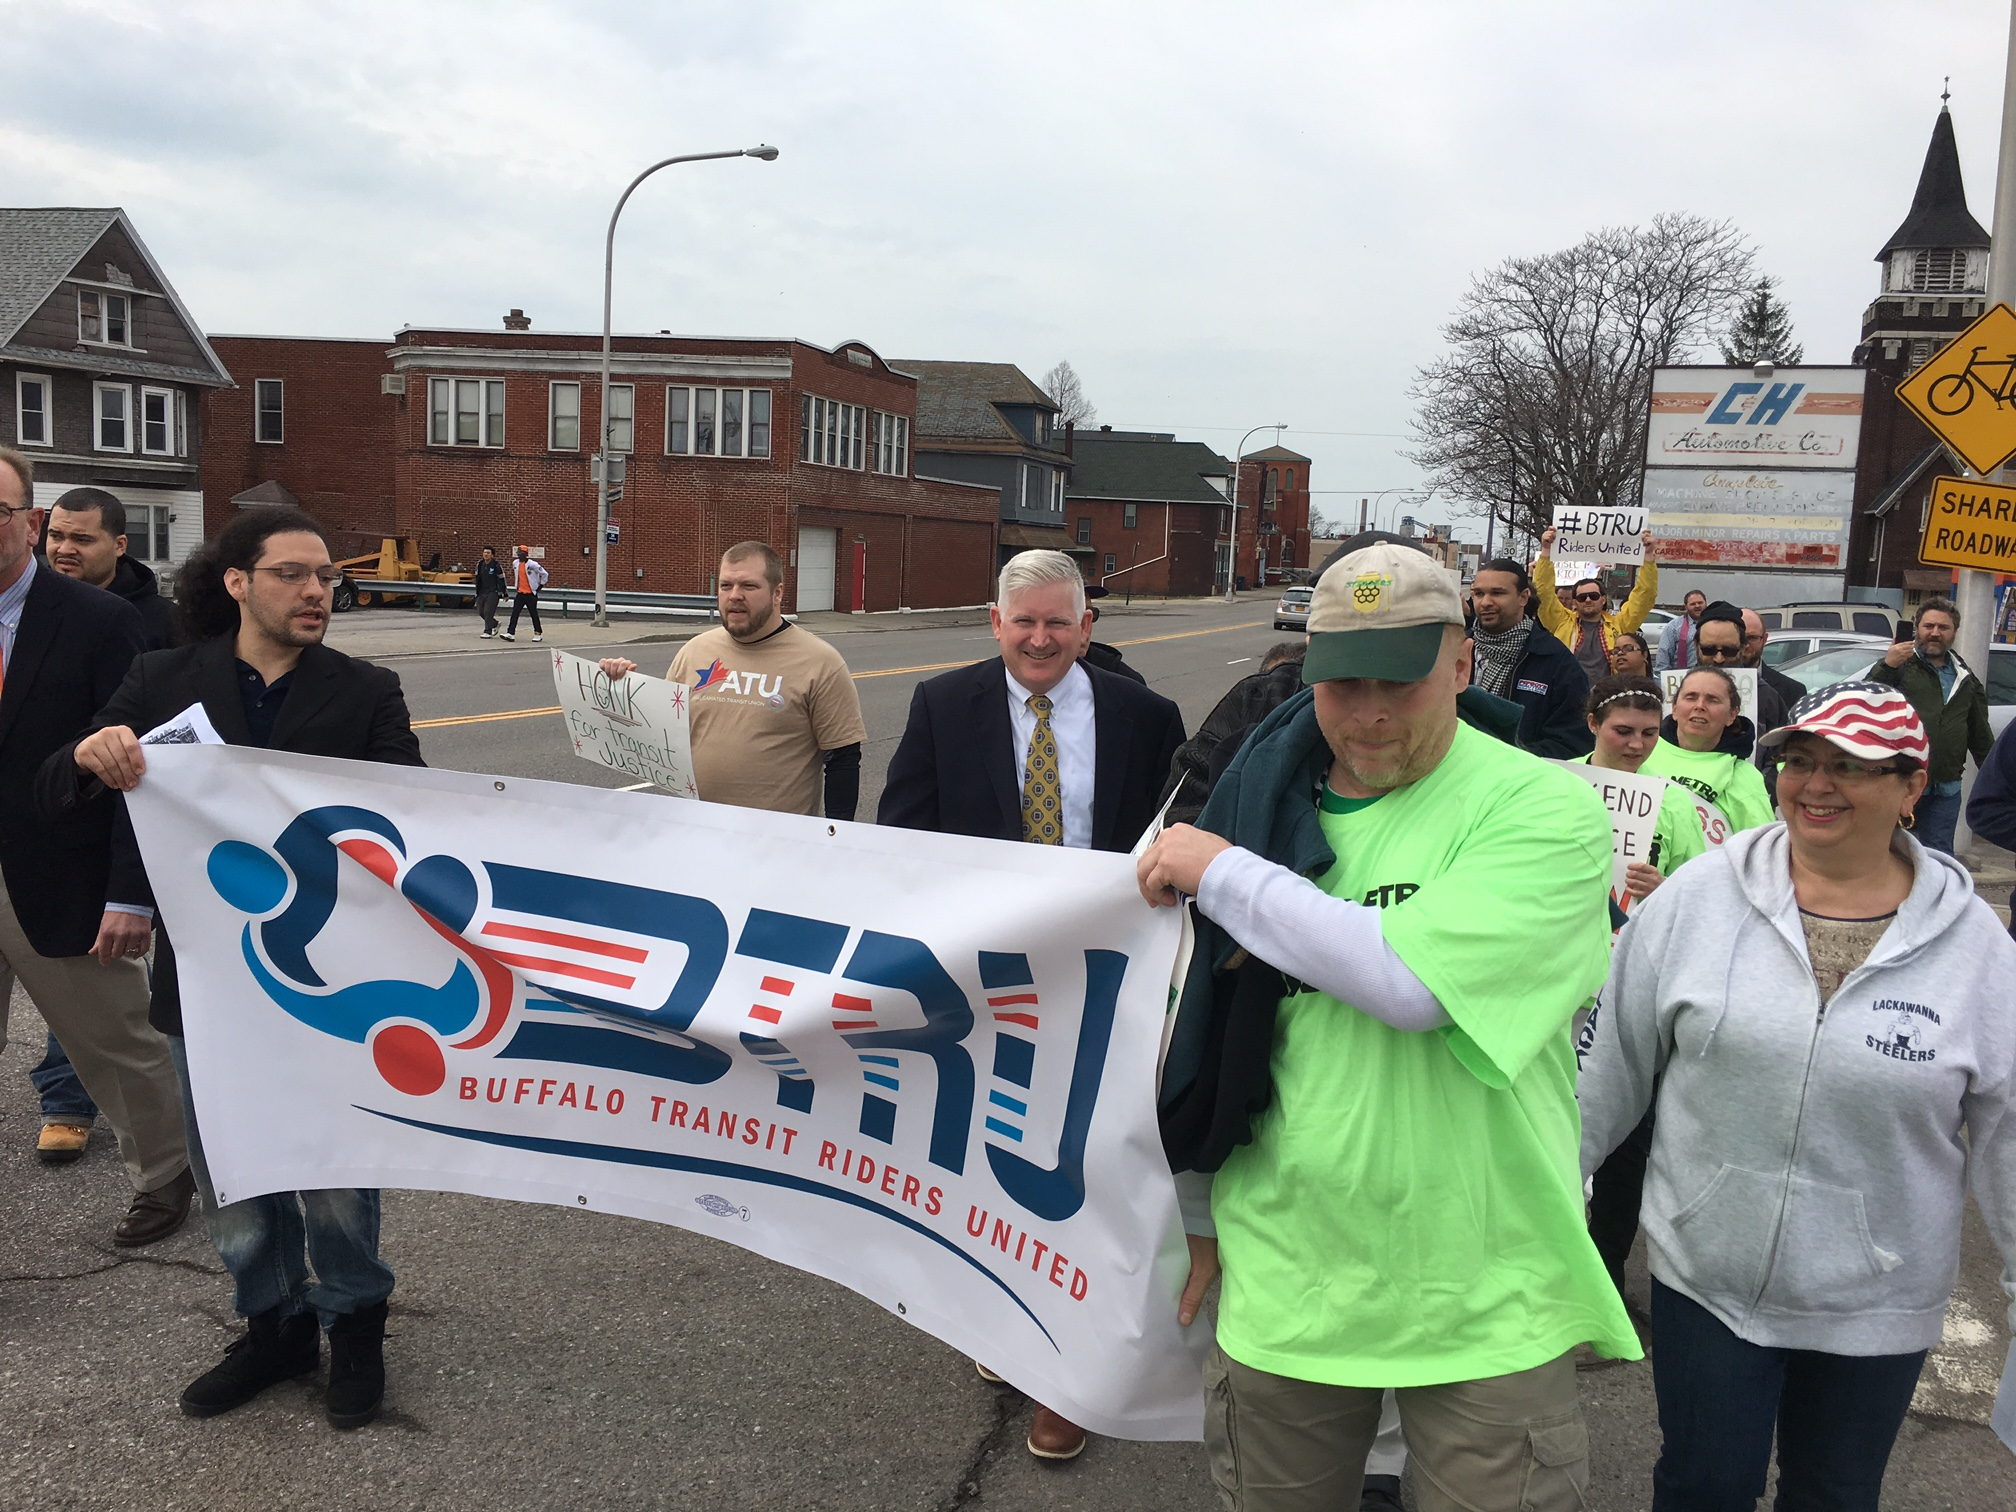 Transit riders march along Ridge Road from Lackawanna's first ward, toward a bus stop on South Park Avenue